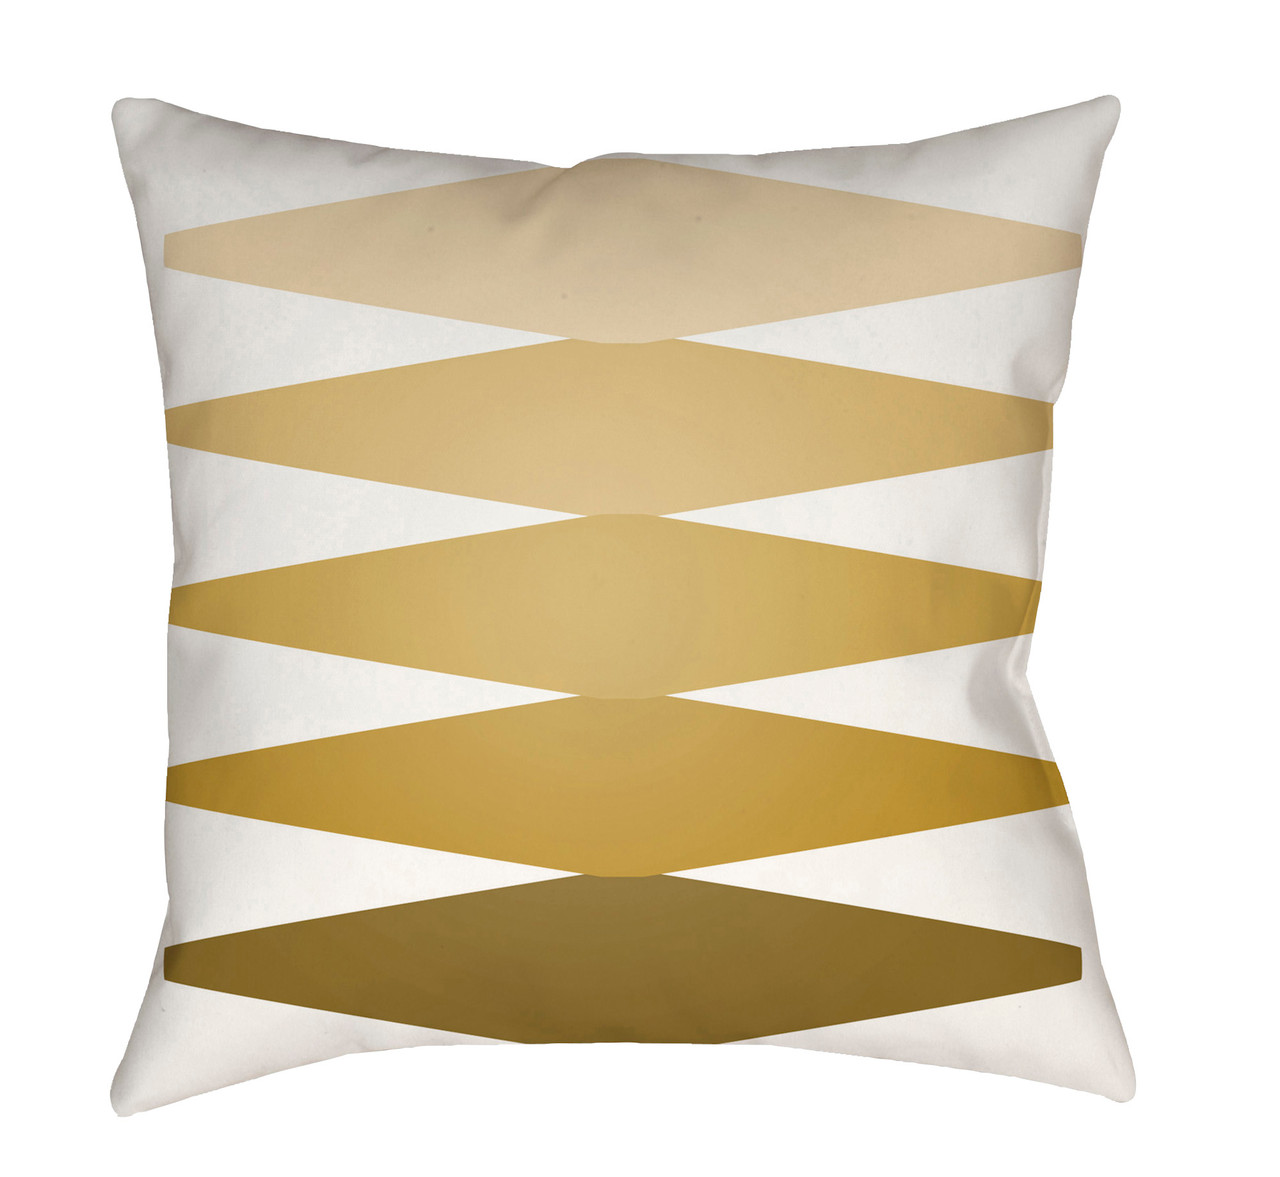 18 Mustard Yellow White Patterned Square Throw Pillow Cover Christmas Central